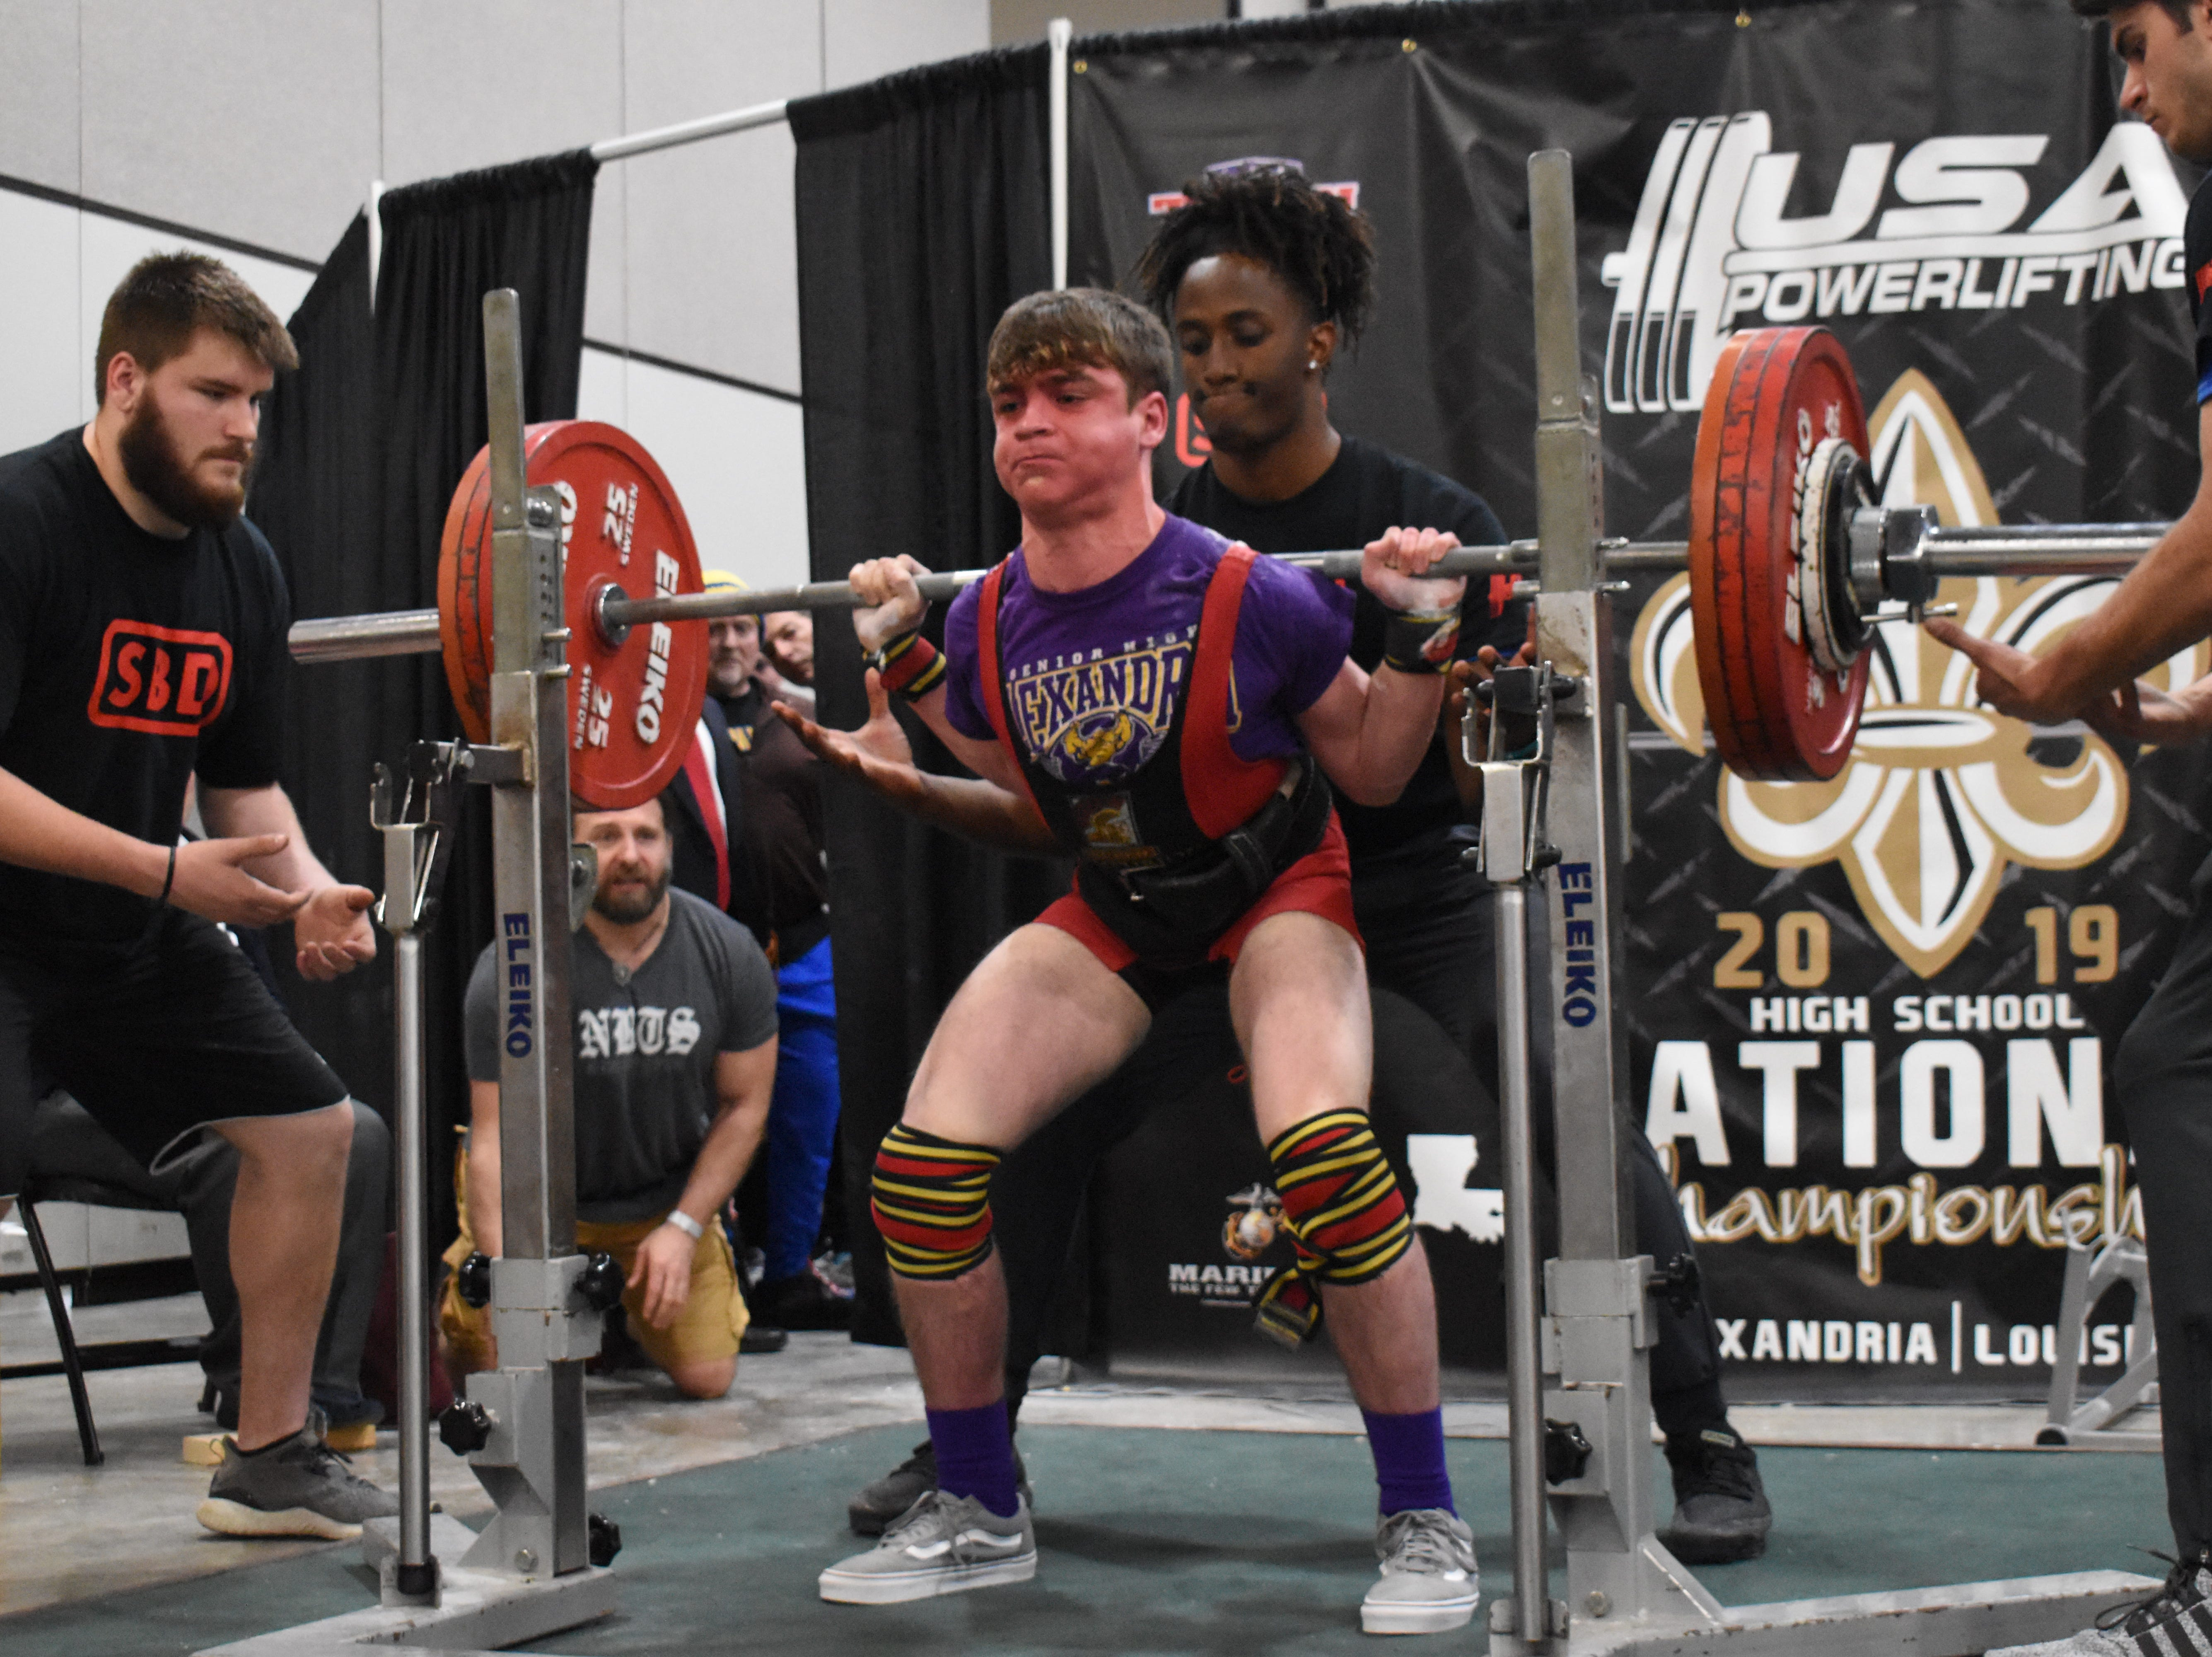 Dylan Palmer of Alexandria Senior High School performs a squat in the USA Powerlifting High School National Championships held Friday, March 29, 2019. The championships, equipped and raw, are being held at the Randolph Riverfront Center in downtown Alexandria with high school powerlifters from across the country competing in the four-day event. Powerlifters from local schools are also competing.